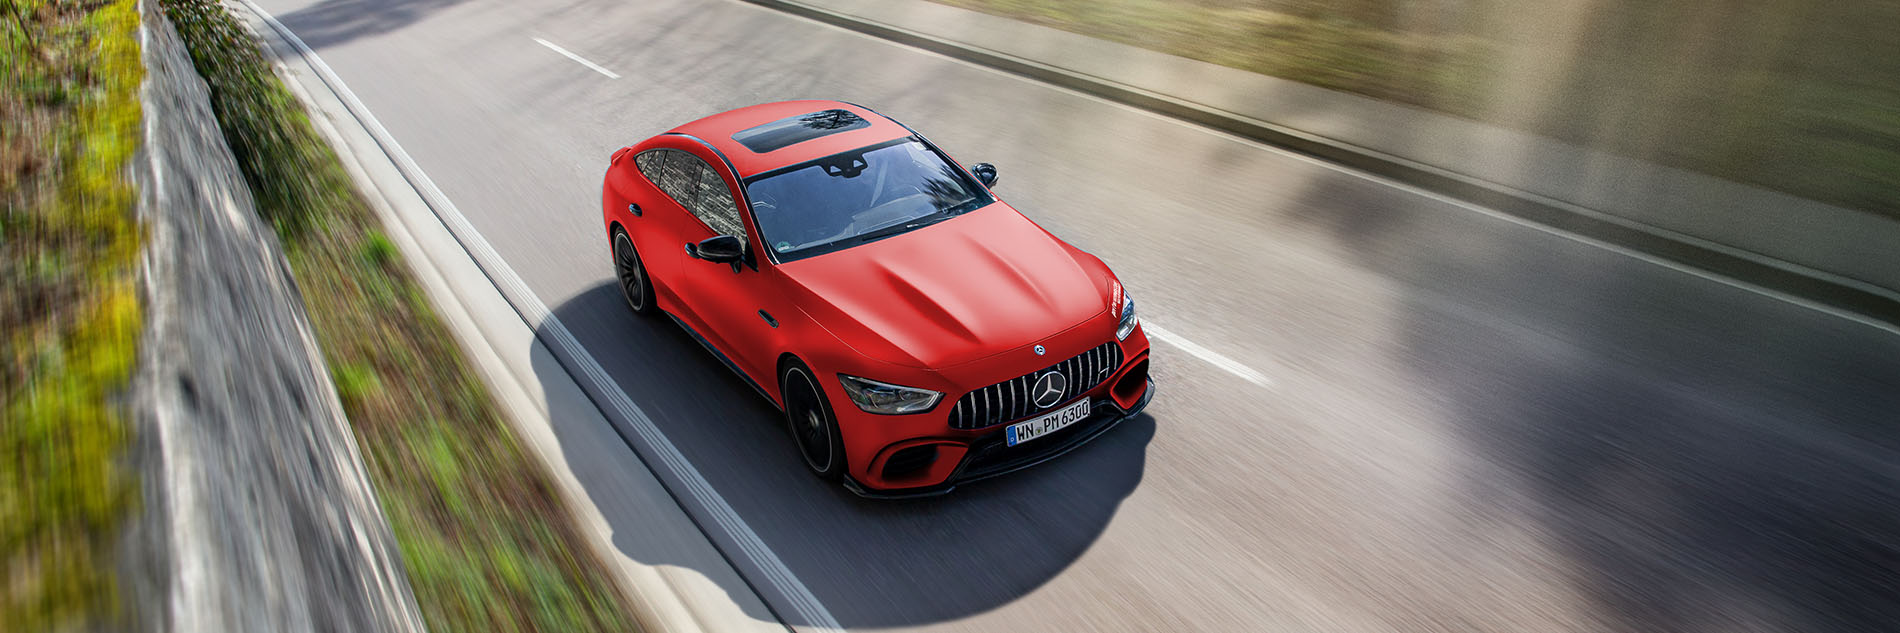 Mercedes AMG GT 63 S Chip Tuning 810 PS